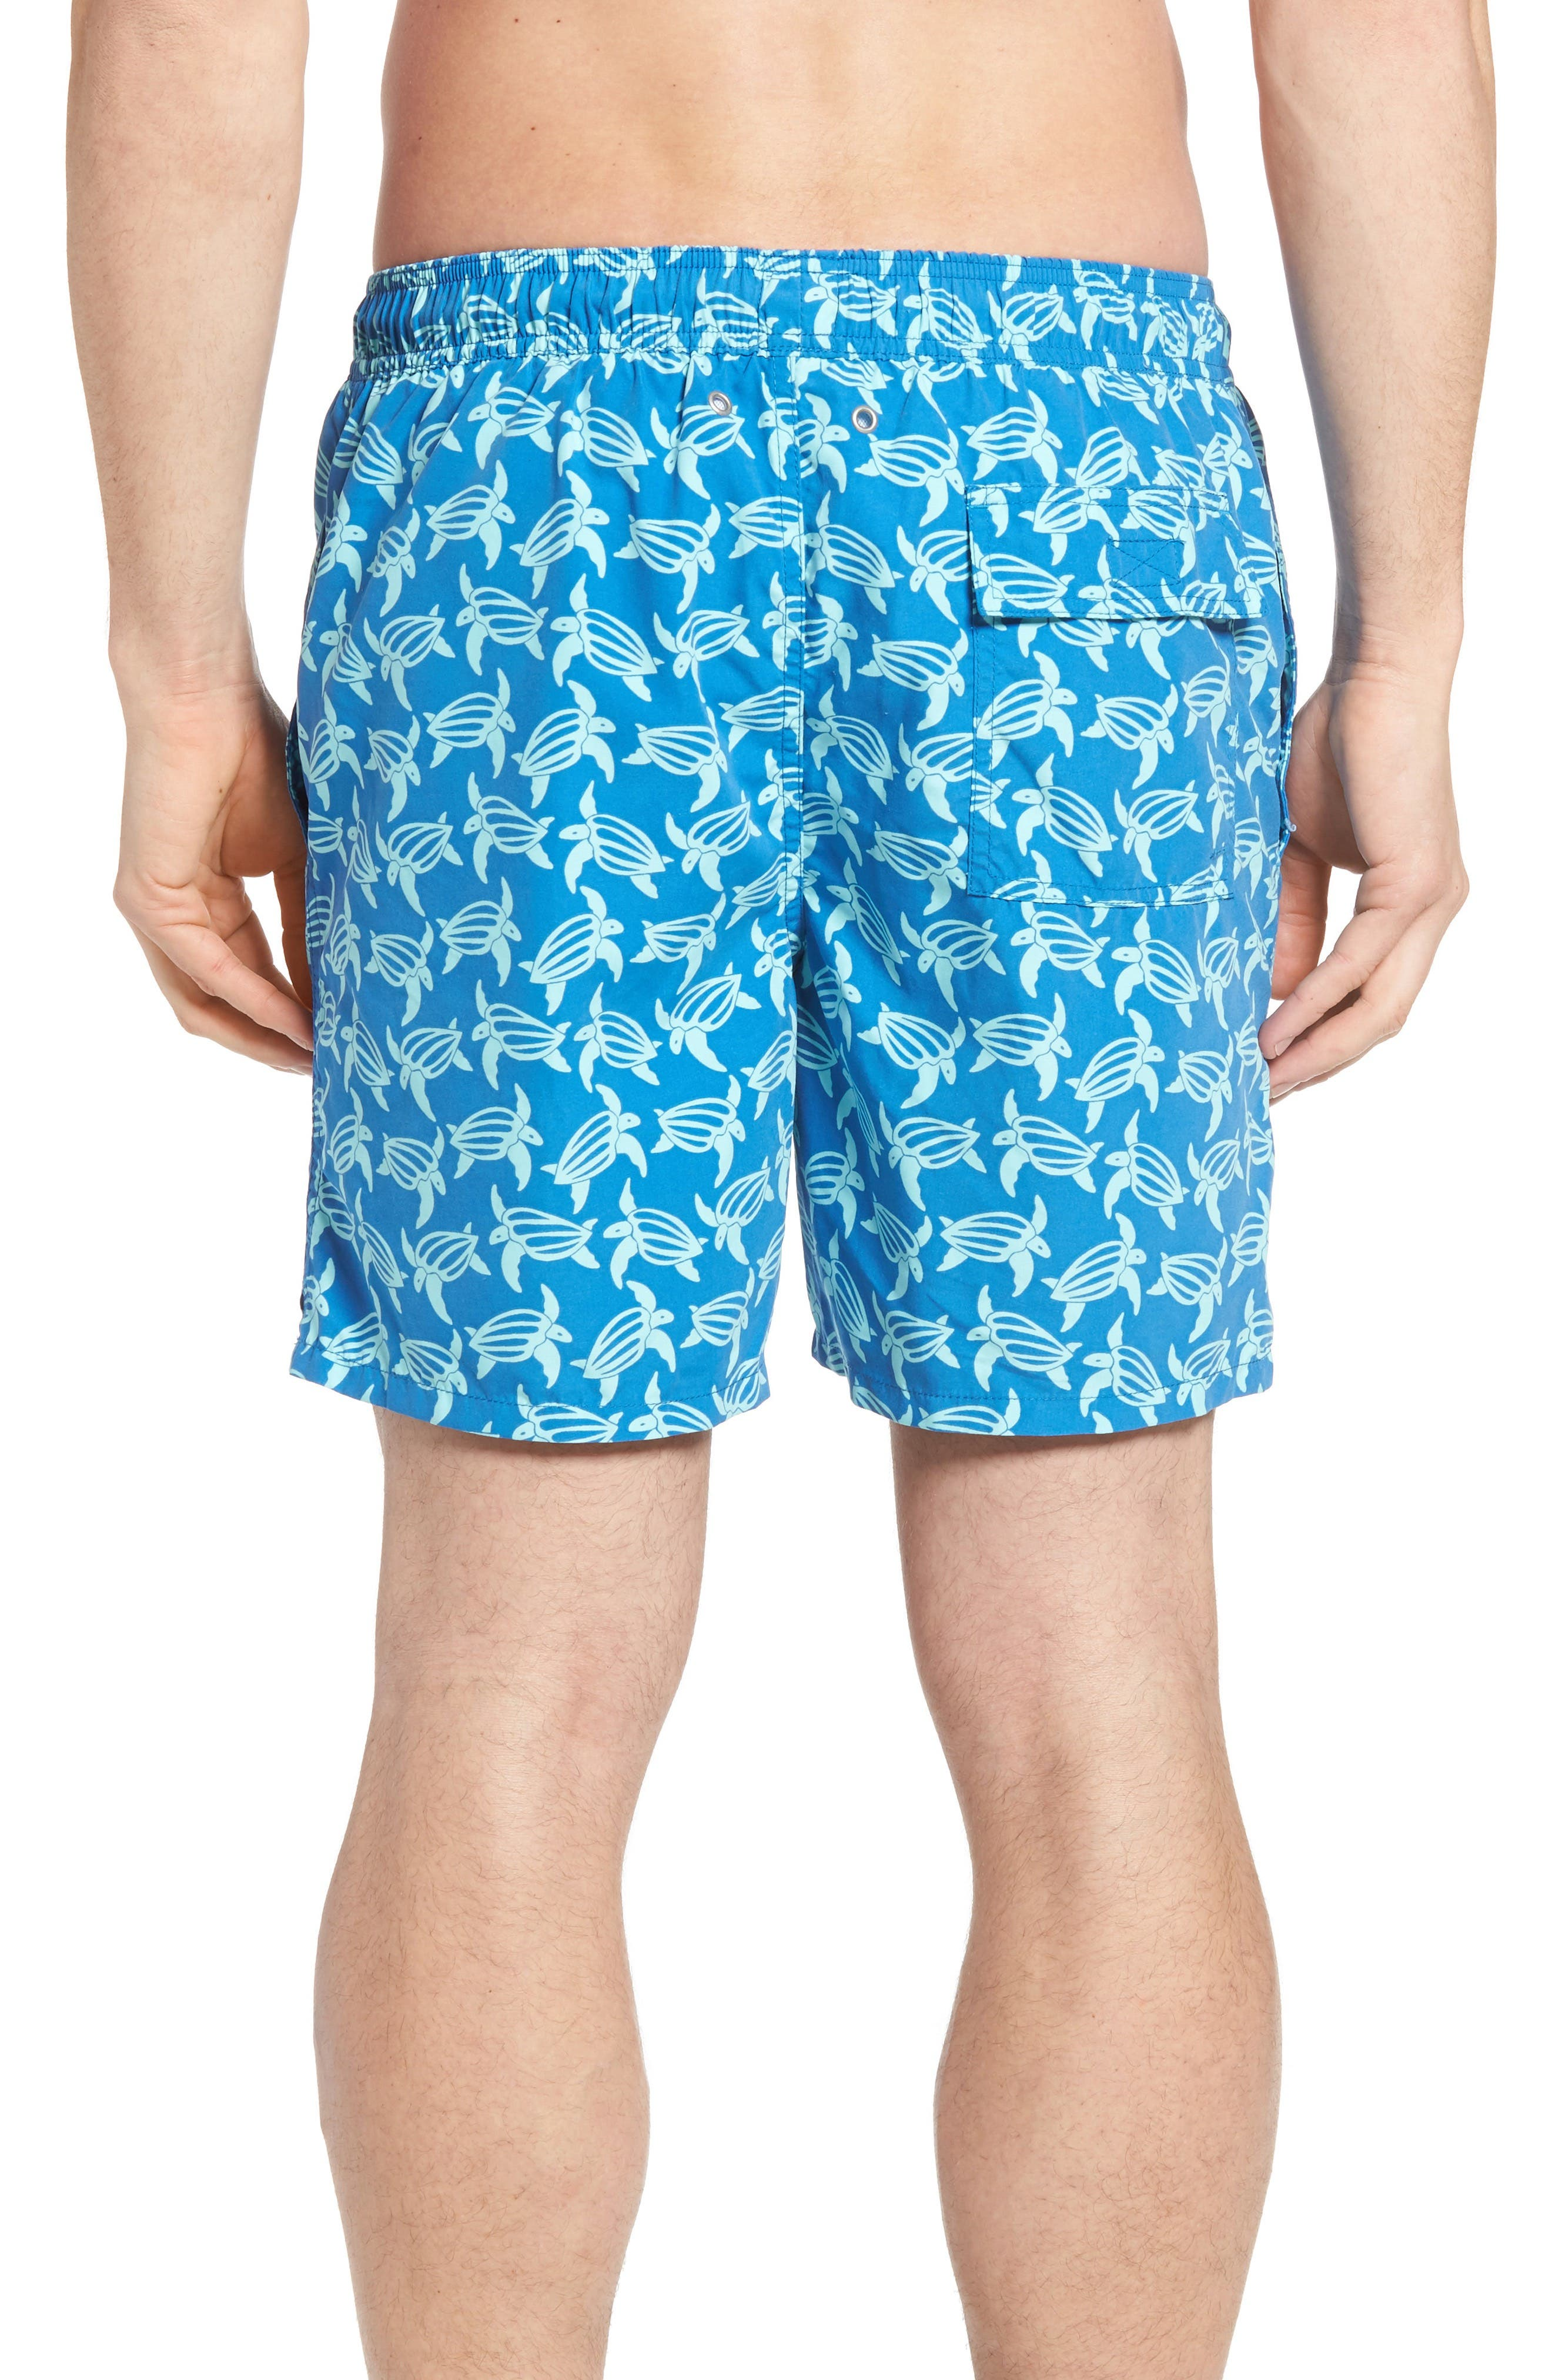 Turtle Print Swim Trunks,                             Alternate thumbnail 2, color,                             MID BLUE AND SKY